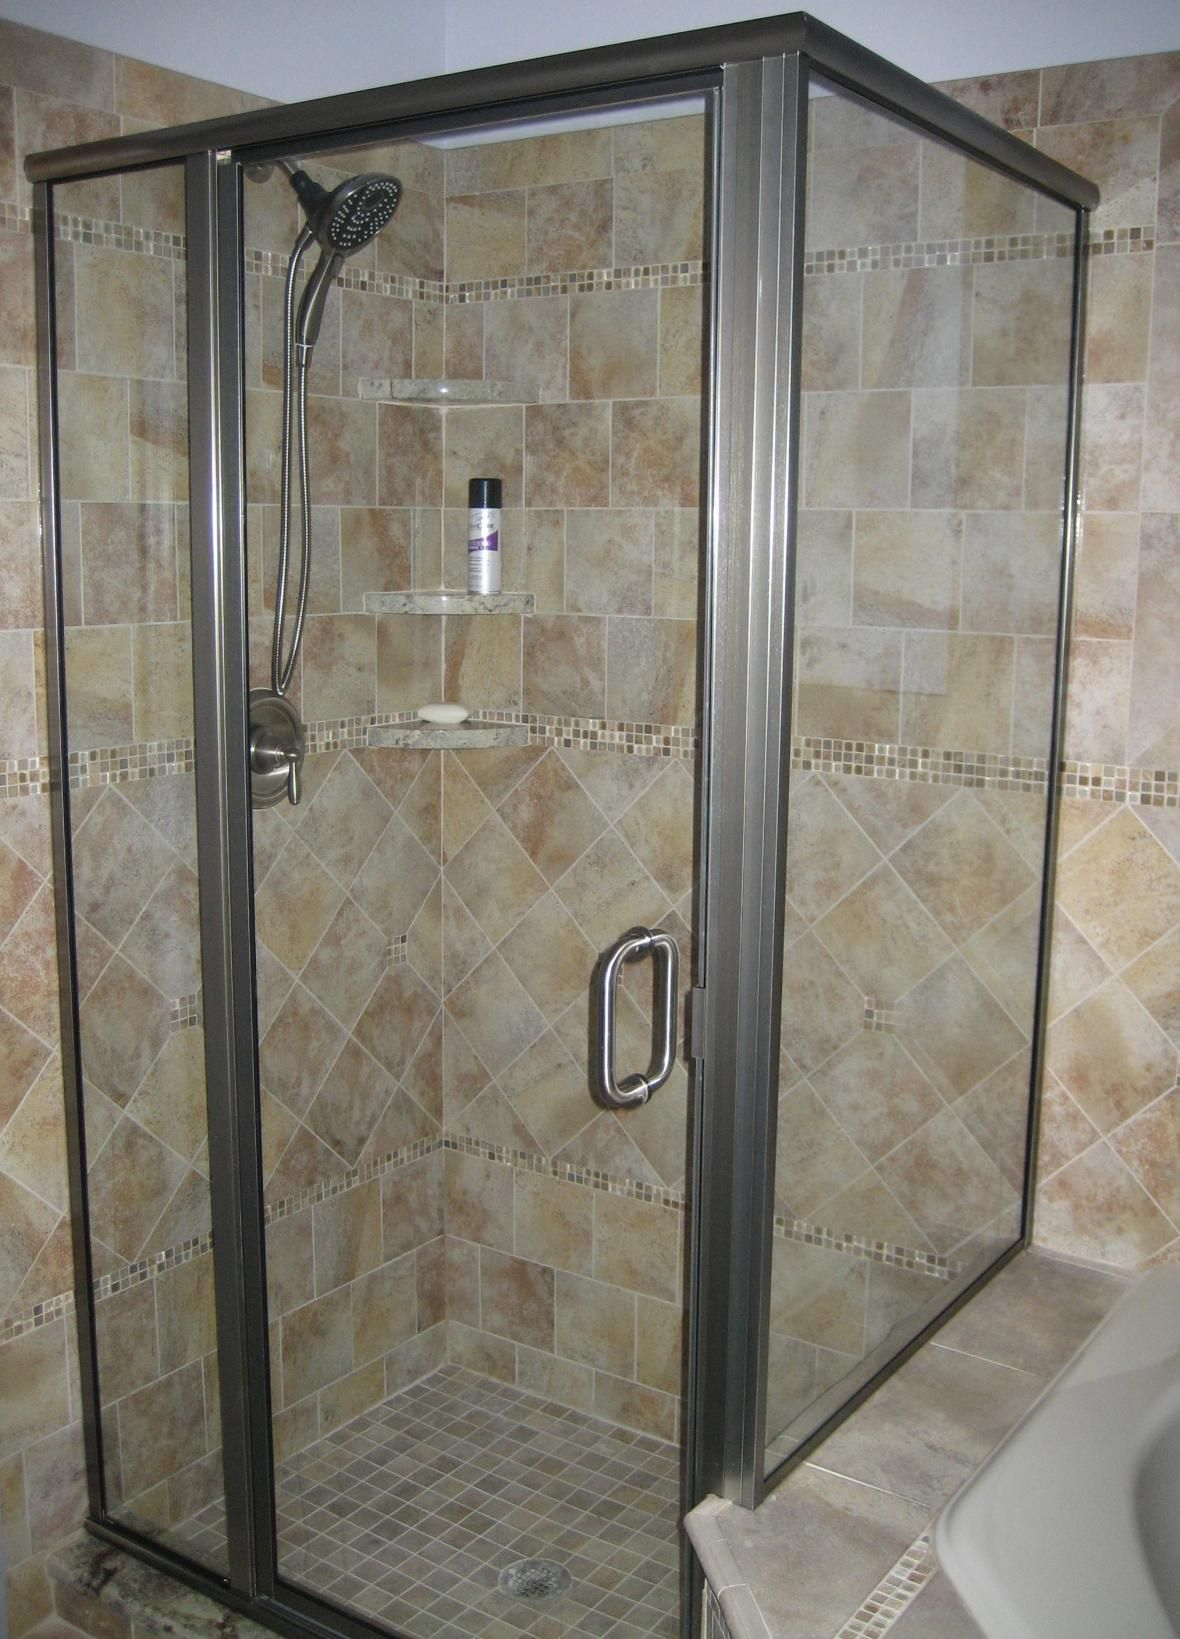 Light Ton Marble Glass Tile Bathroom Shower Design With Stainless Steel  Frame Glass Partition. Likeable Shower Designs With Glass Tile For Bathroom  ...